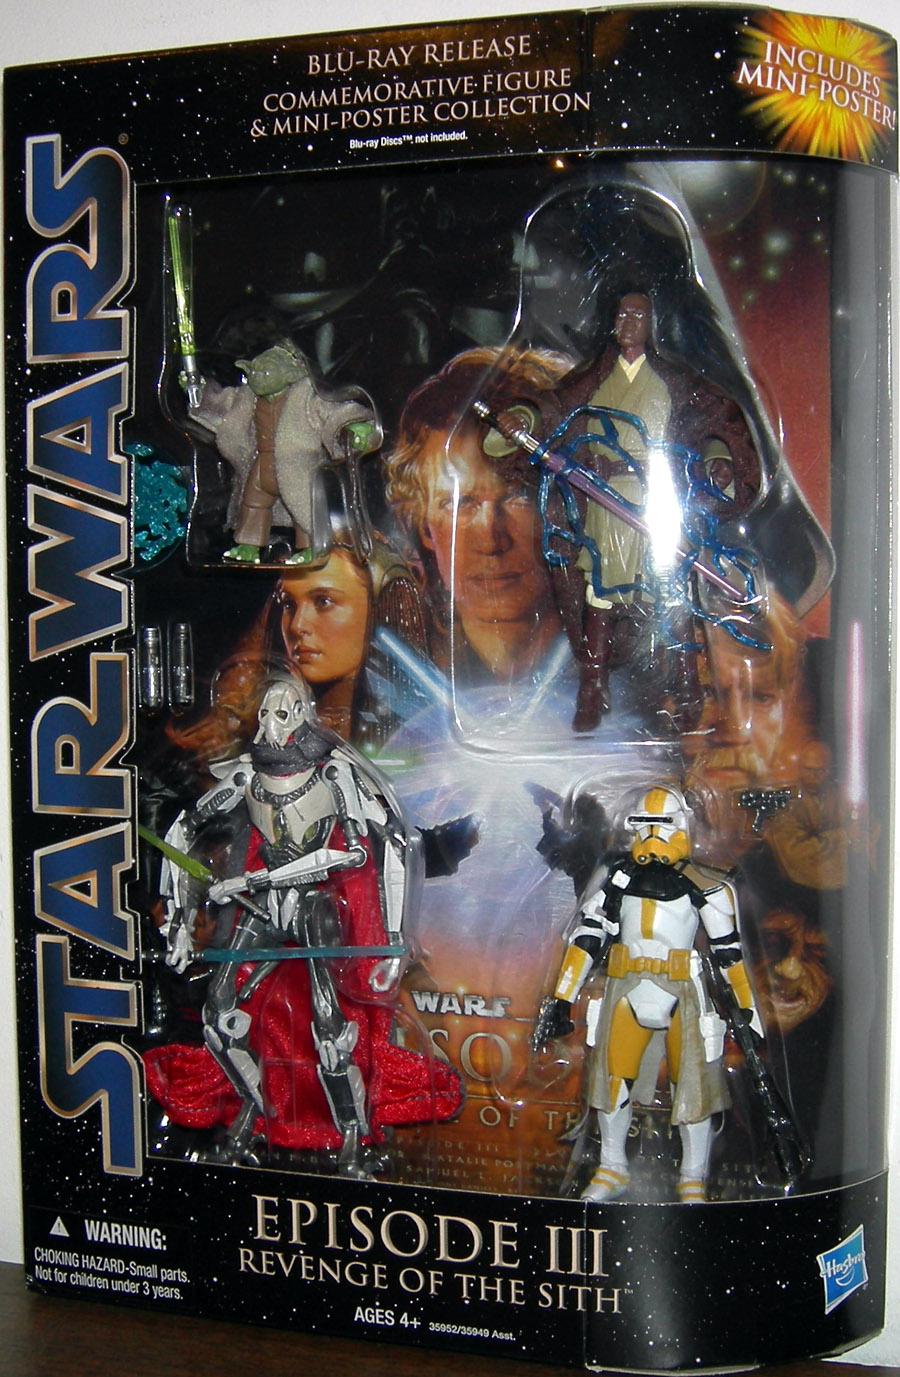 Star Wars Blu-Ray Release Commemorative Figure Collection Episode III